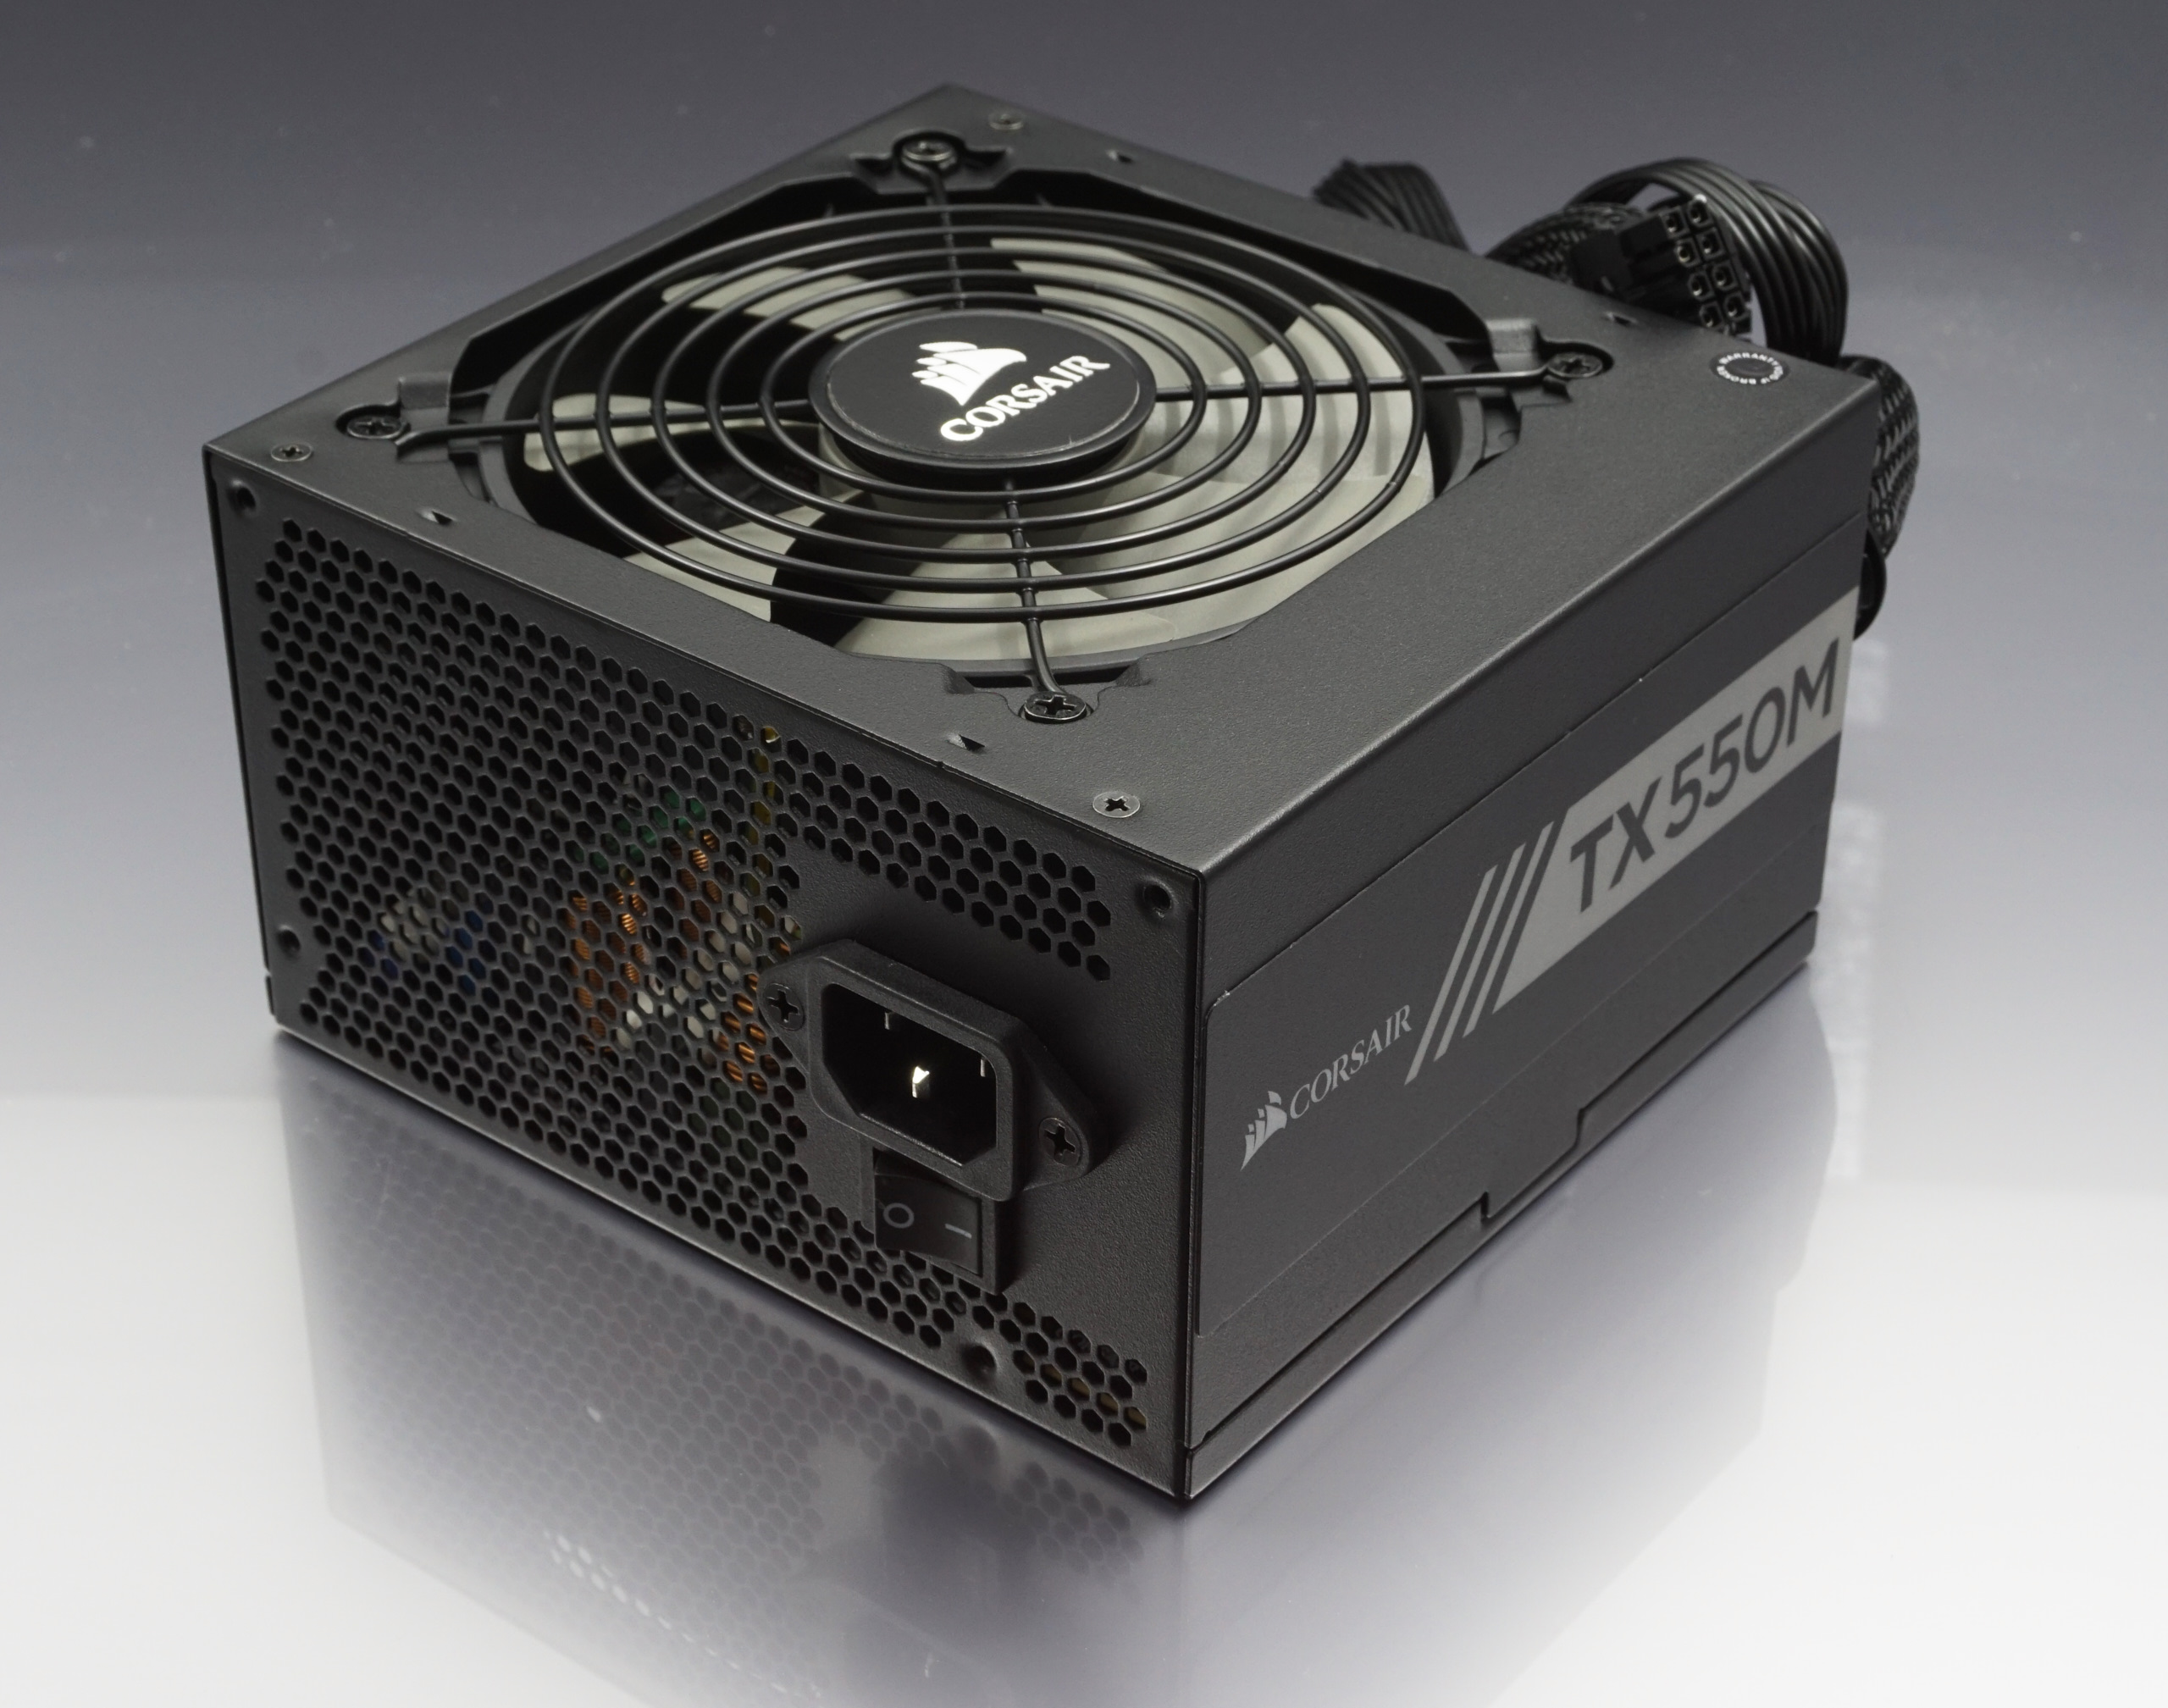 The Corsair TX550M PSU - The $80 Power Supply for Almost Everyone